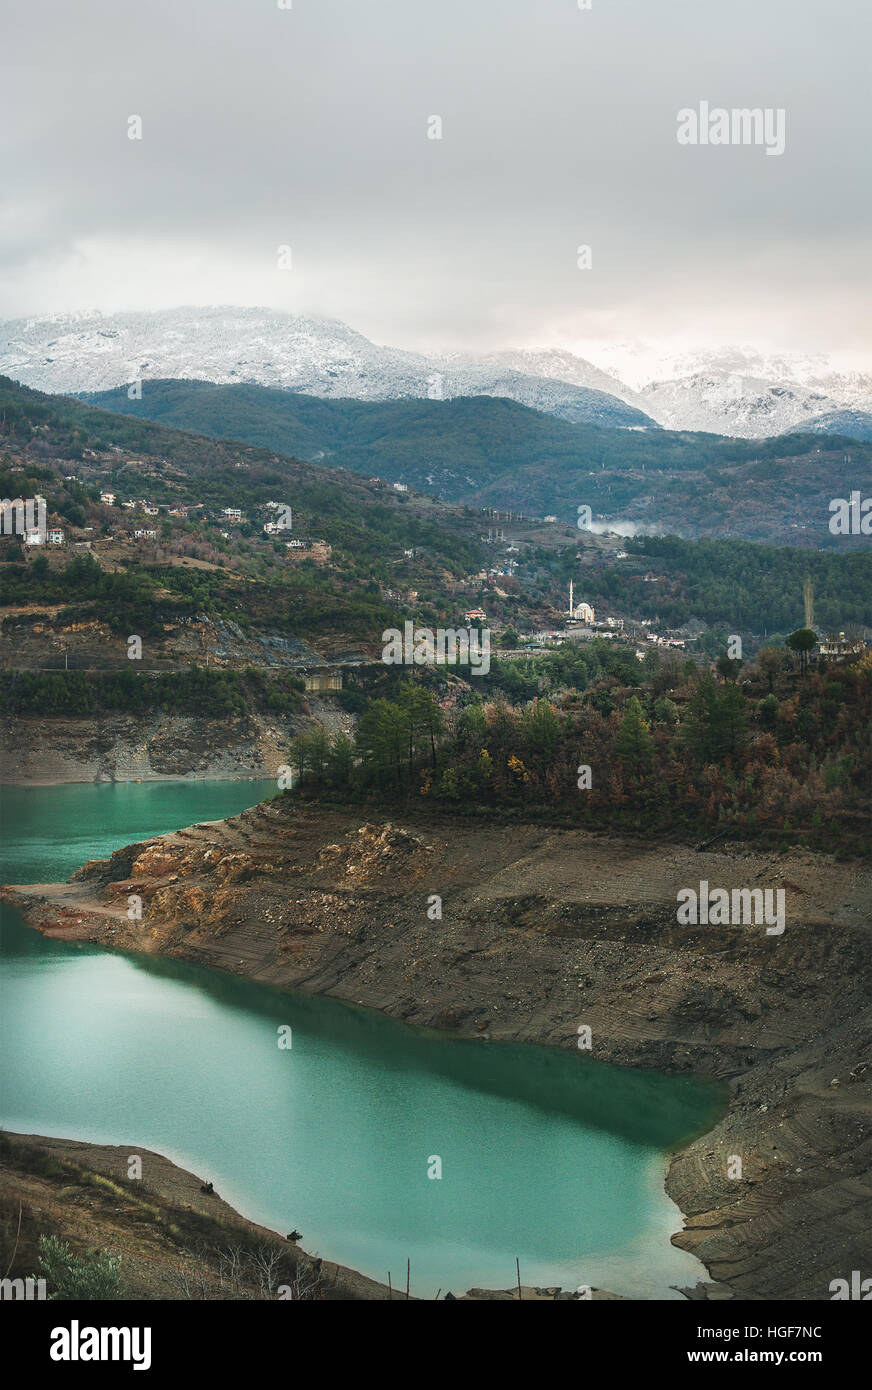 Landscape with green Dim Cay storage pond in mountains, Turkey - Stock Image